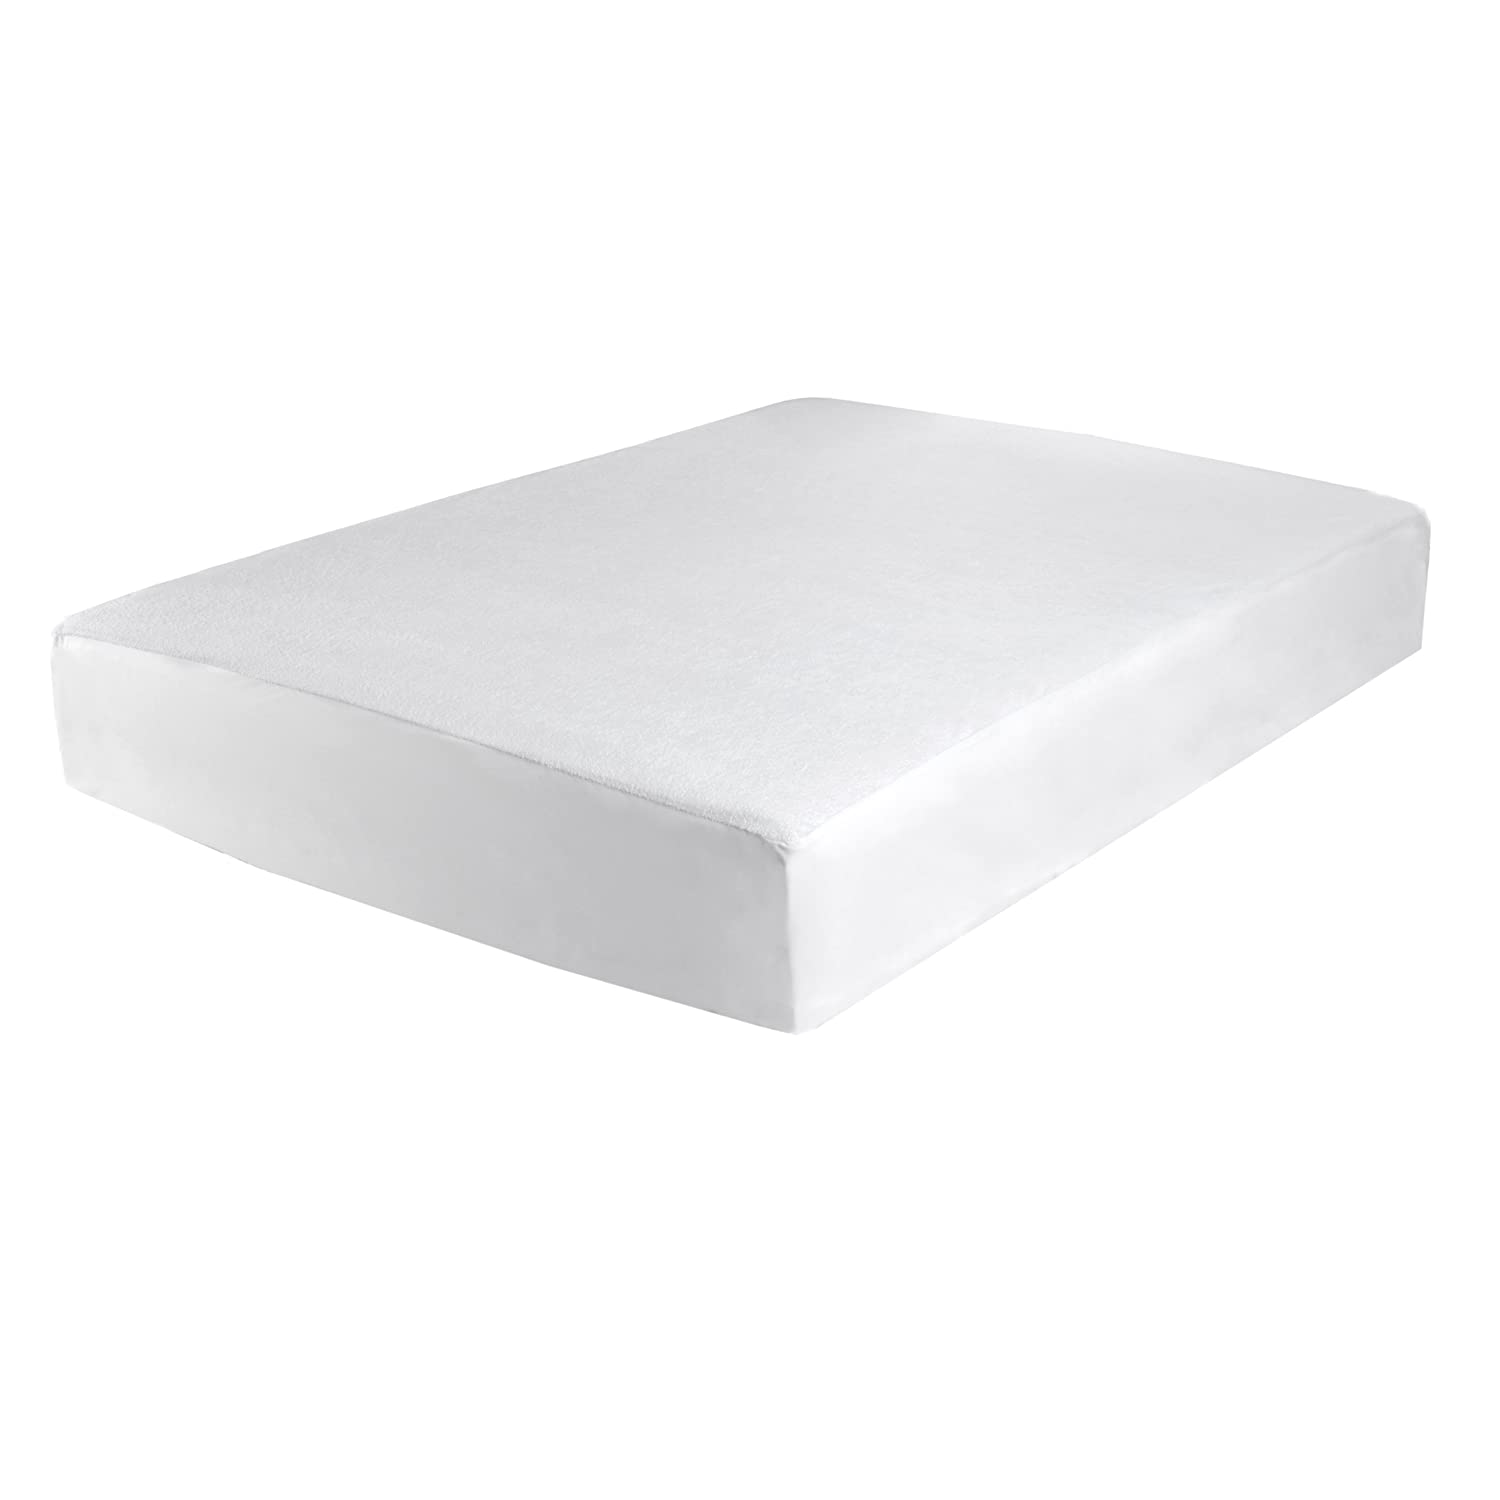 Levinsohn Terry Top Waterproof Mattress Protector, Twin X-Large FRE-149-XX-WHIT-06